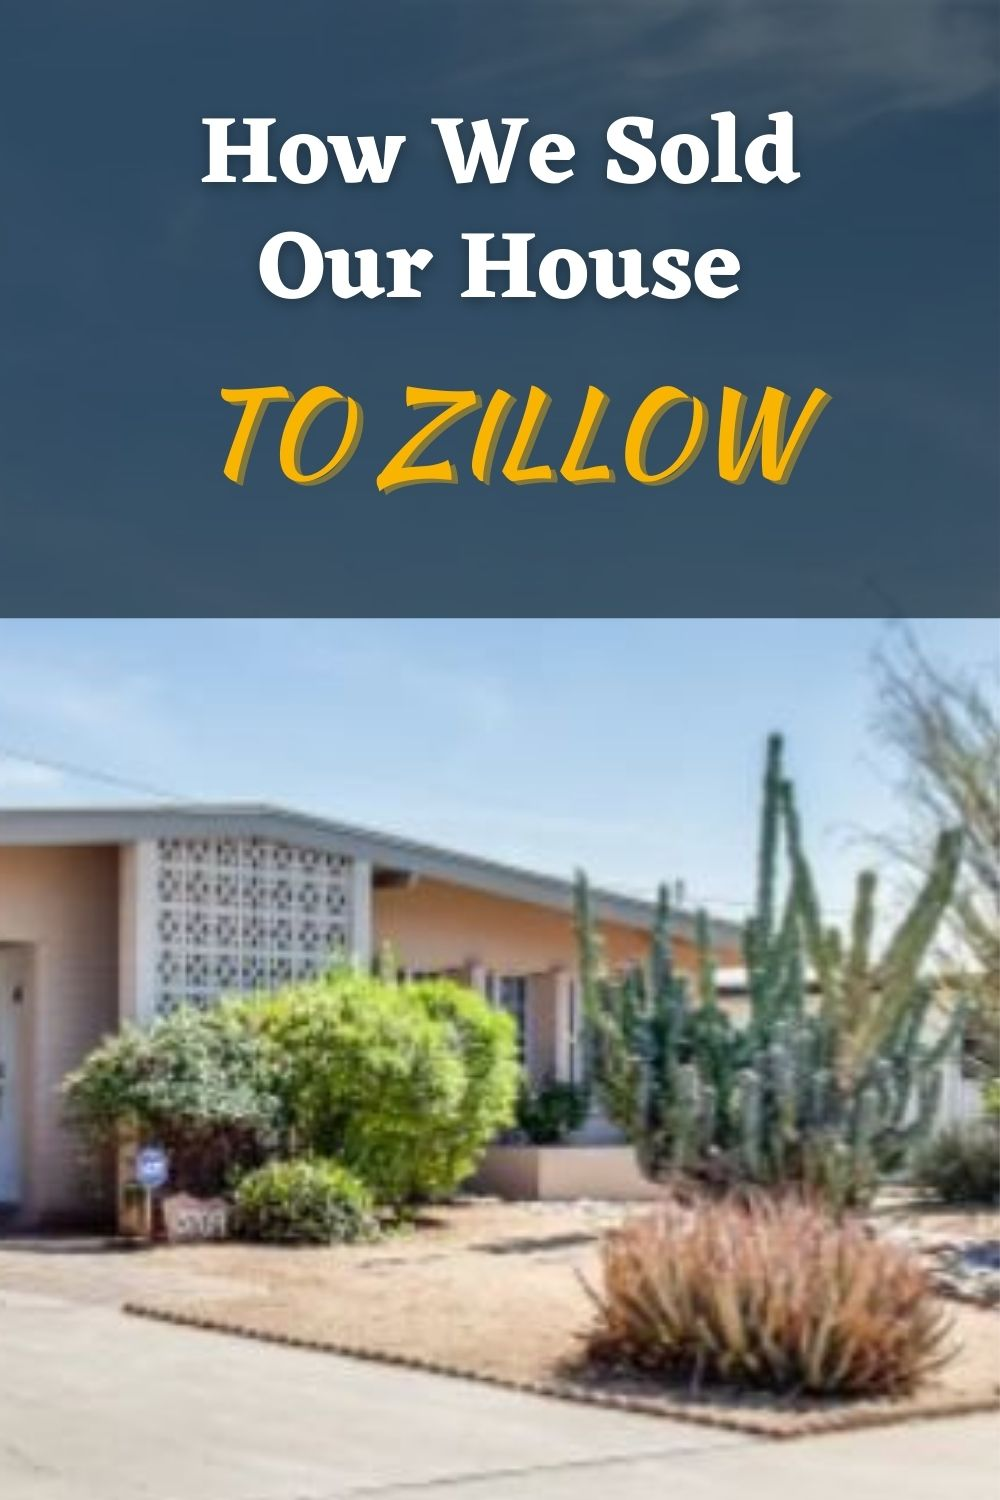 How We Sold Our House to Zillow for a Profit